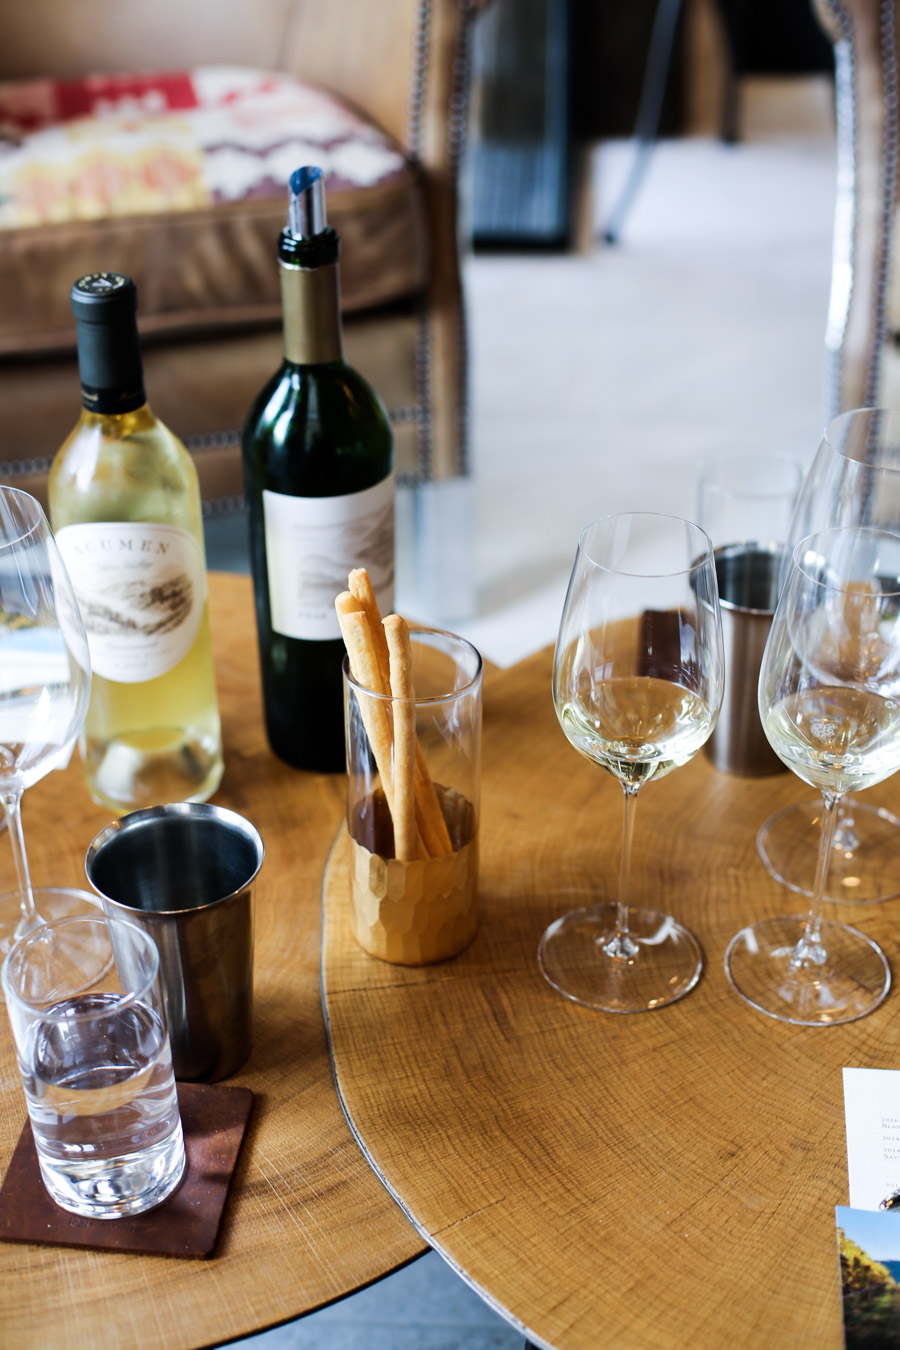 Downtown Napa Wineries - Acumen Tasting Room & Art Gallery